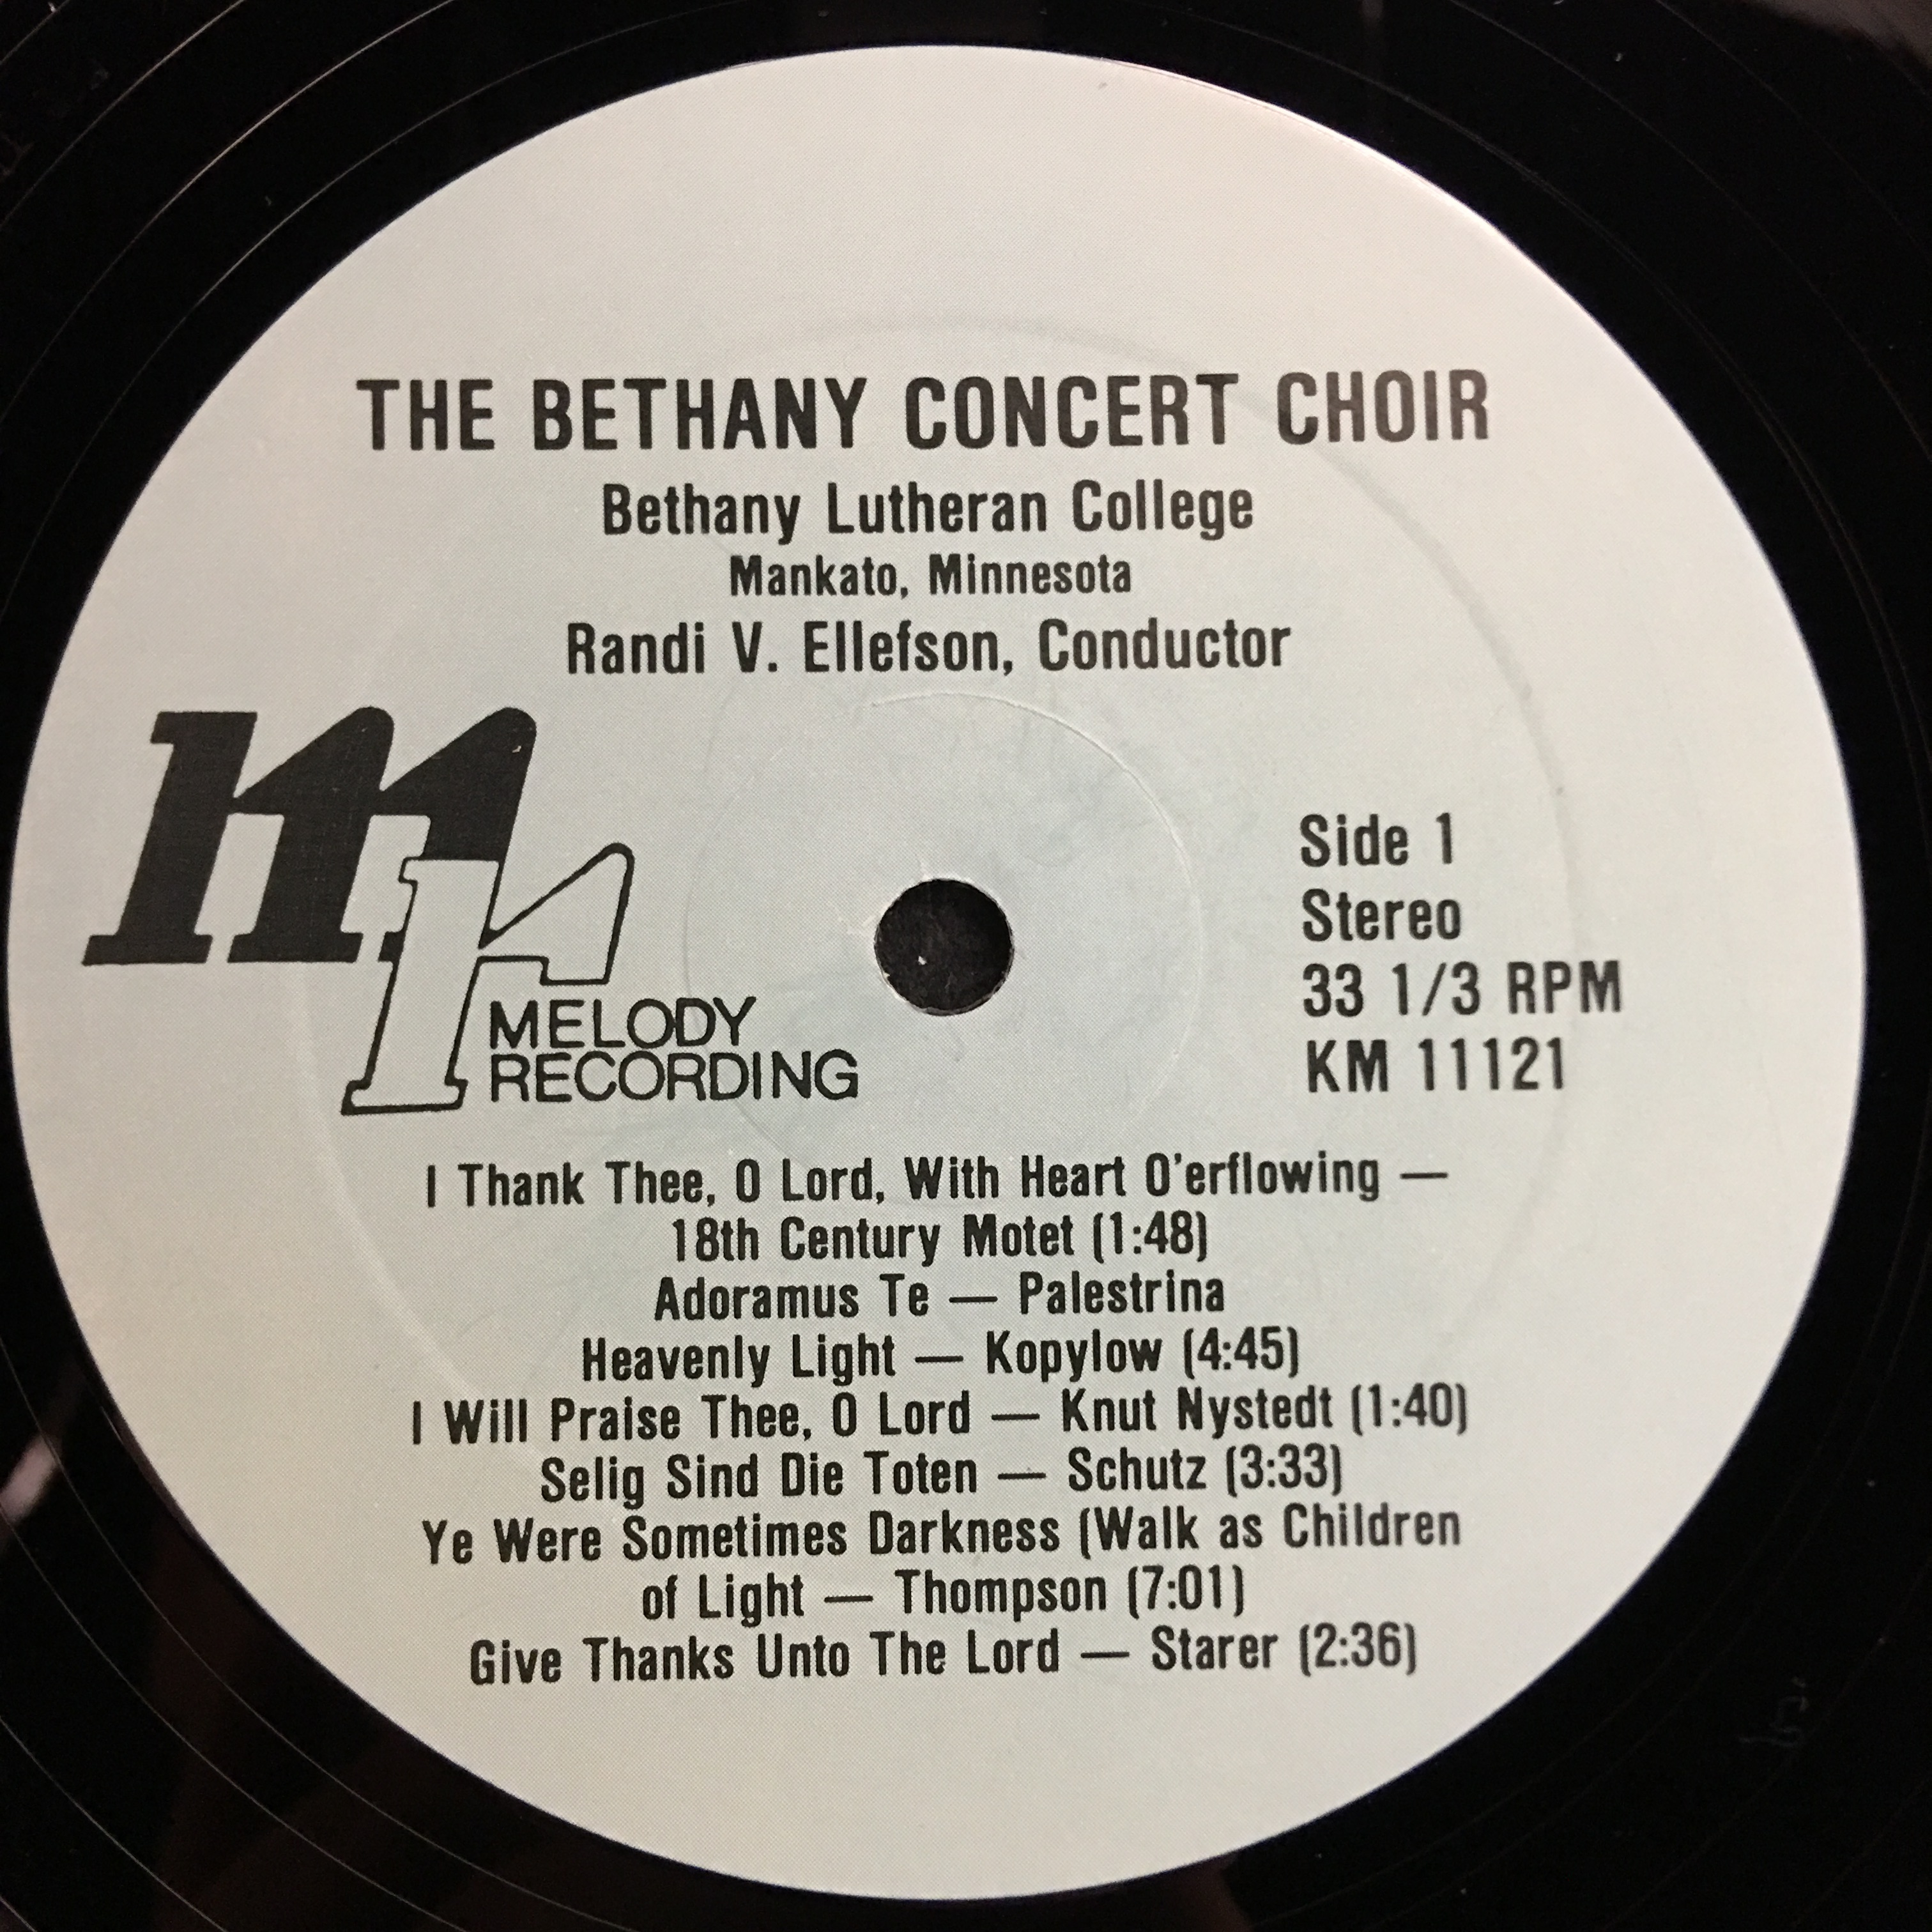 Bethany Lutheran College Choir 1983 Vinyl 1 Side 1